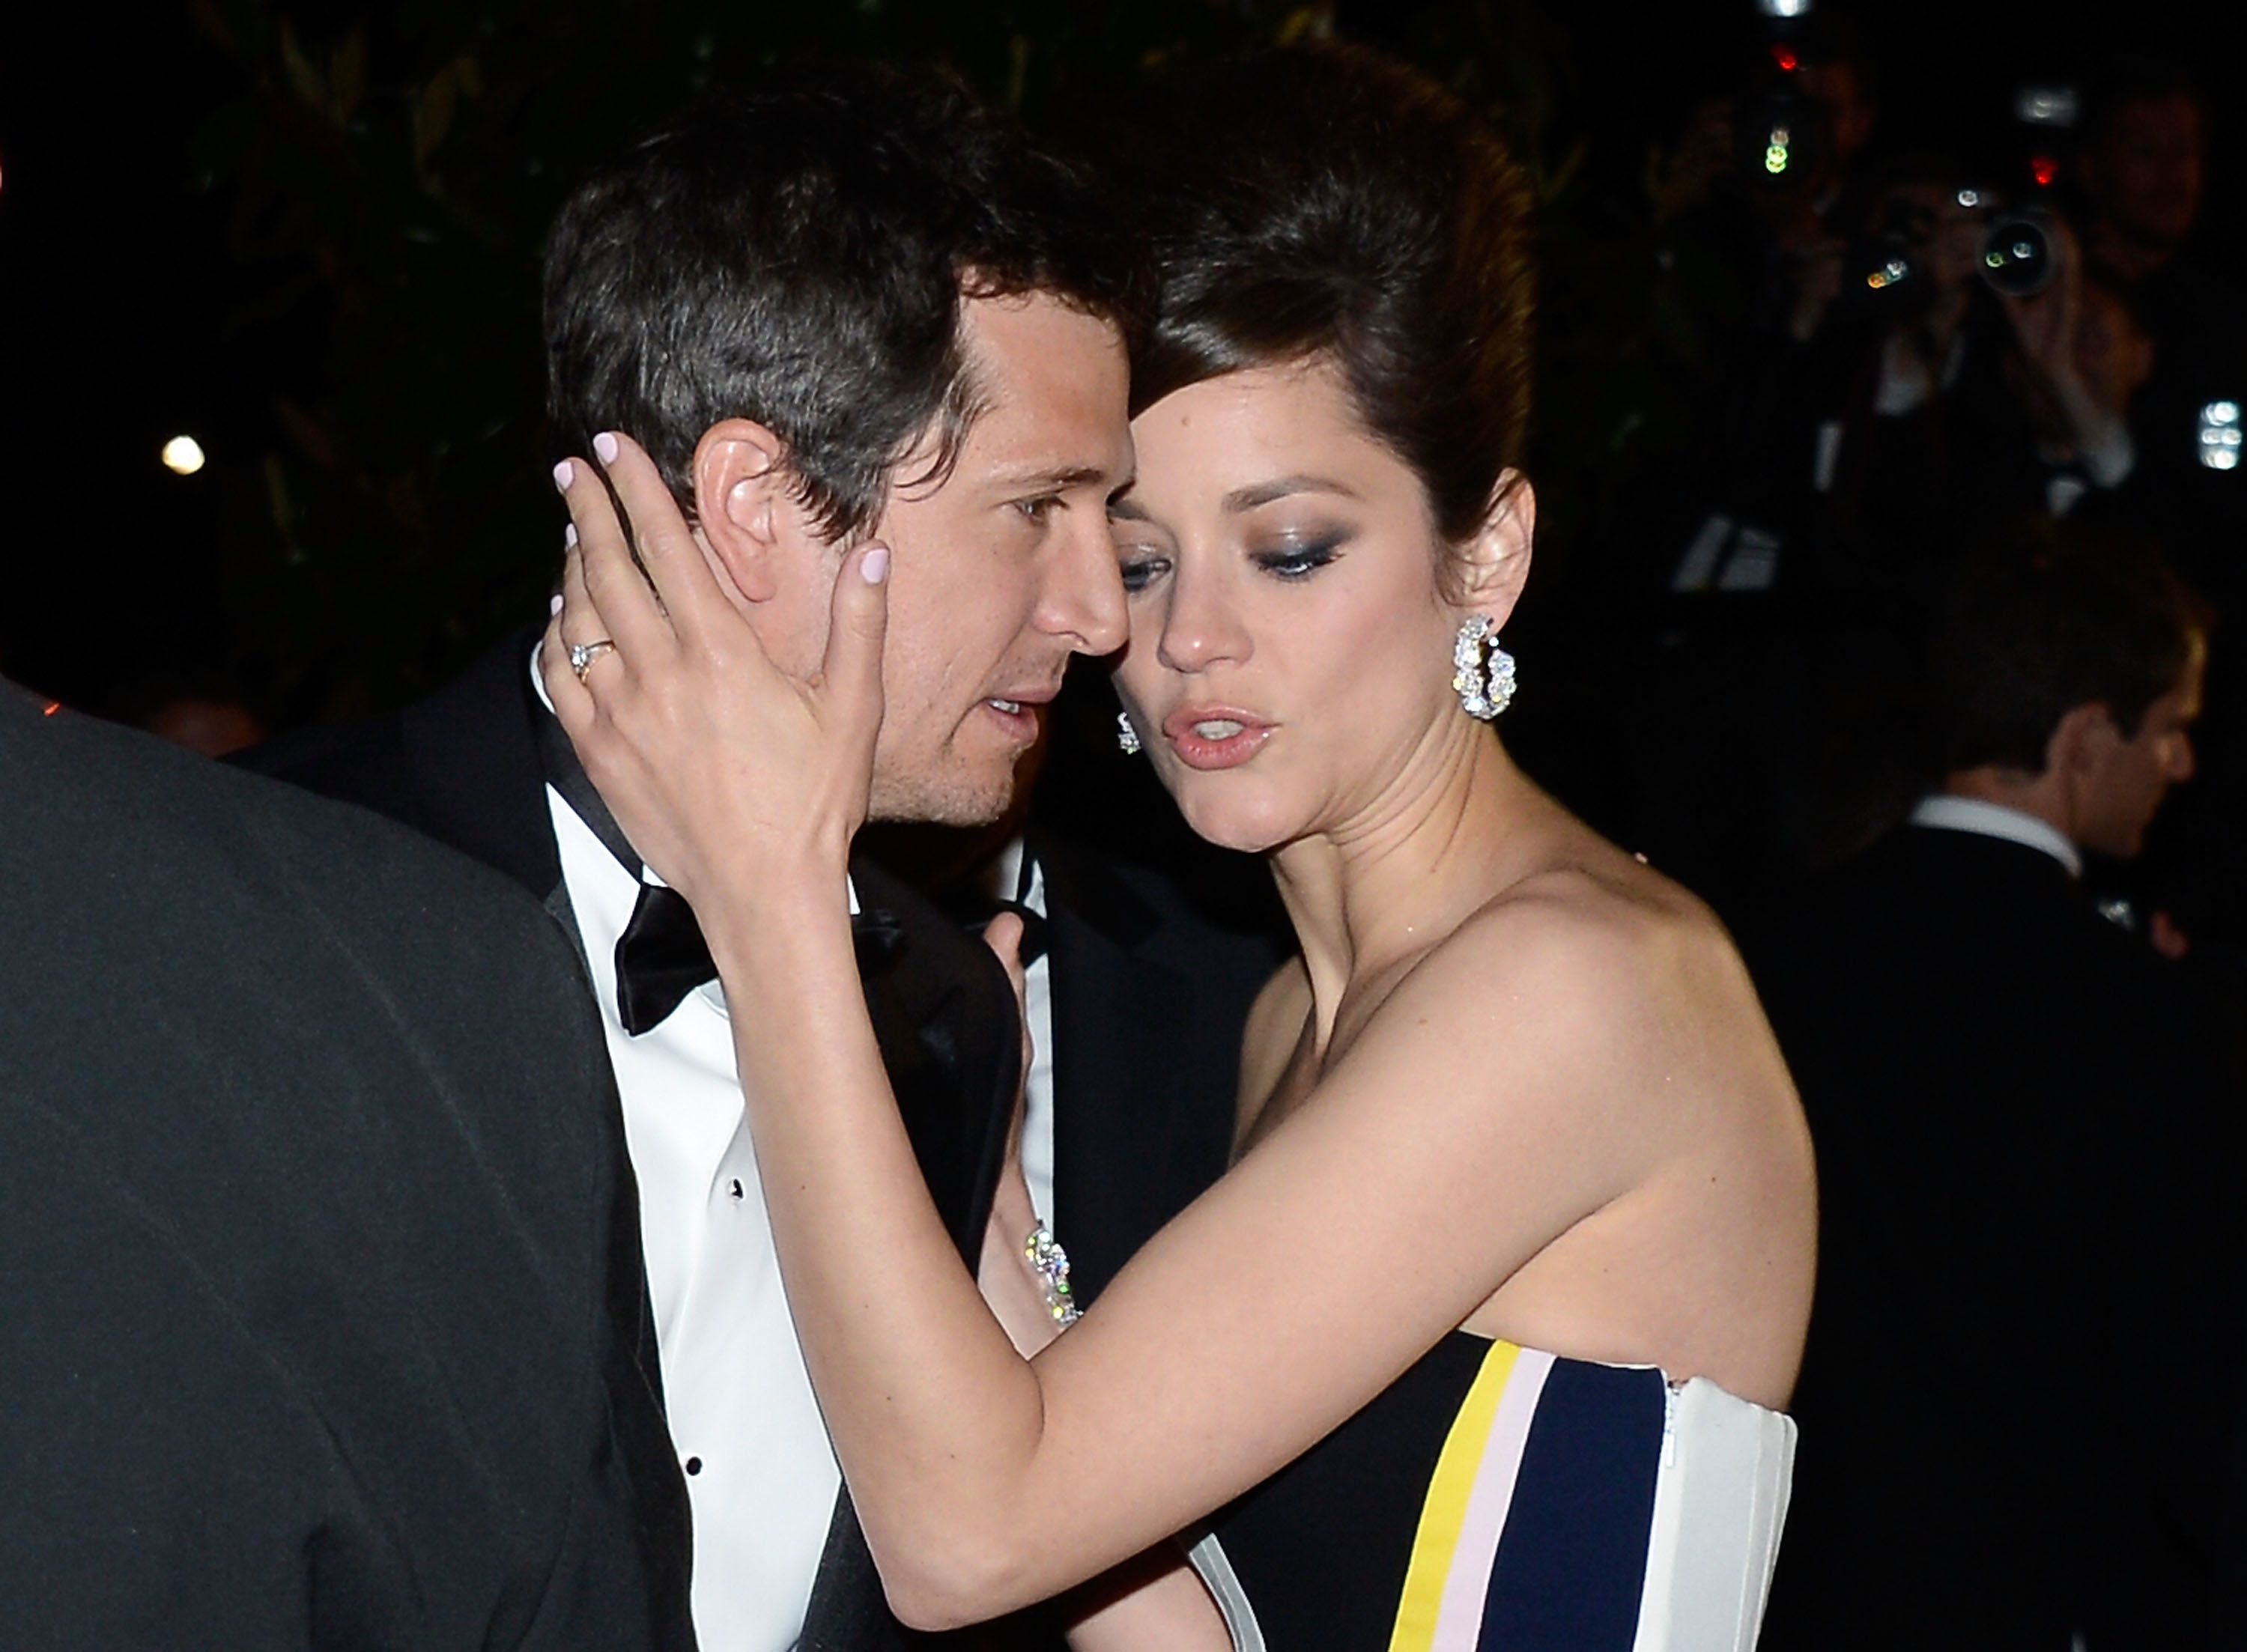 Marion Cotillard's Boyfriend, Guillaume Canet, Responds To Brangelina Affair